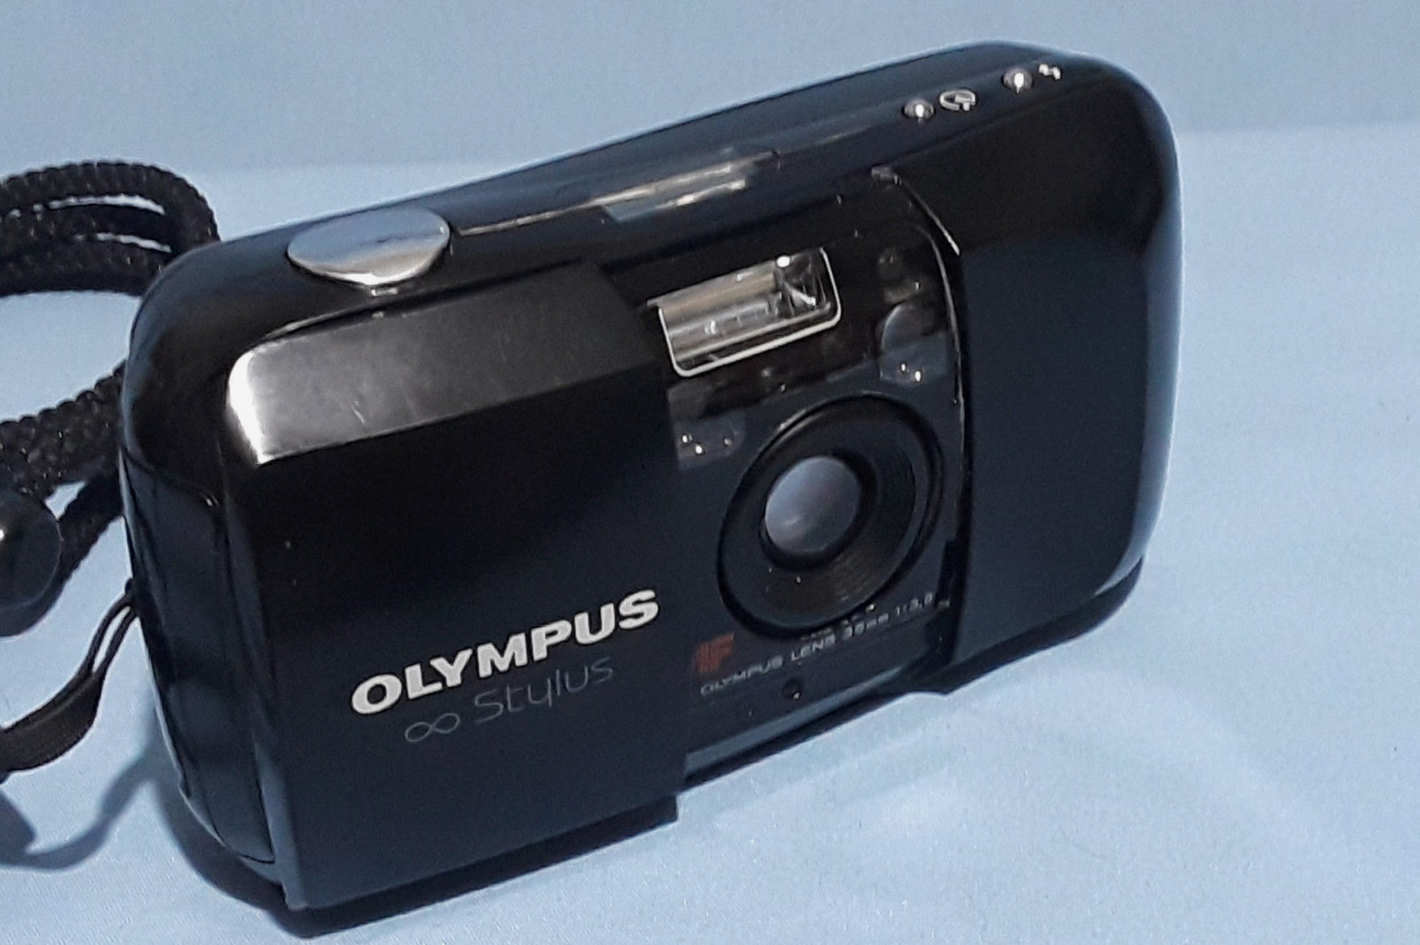 Olympus Infinity Stylus 35mm Point & Shoot Film Camera